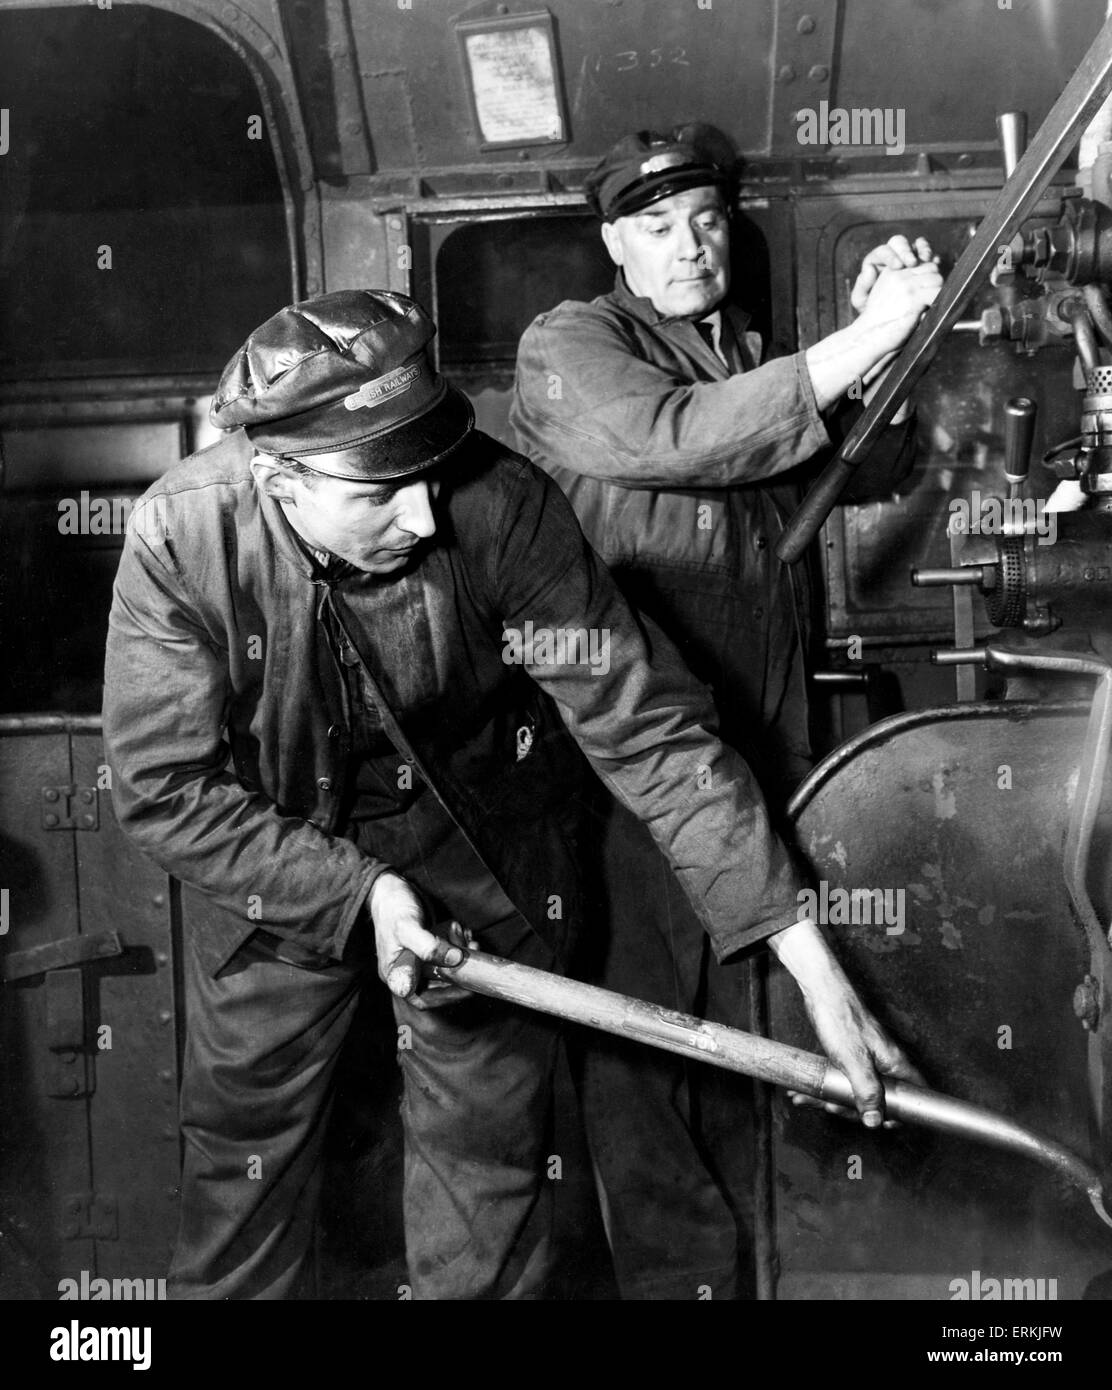 Engine driver and fireman at work on a British Railways locomotive, February 1954. - Stock Image